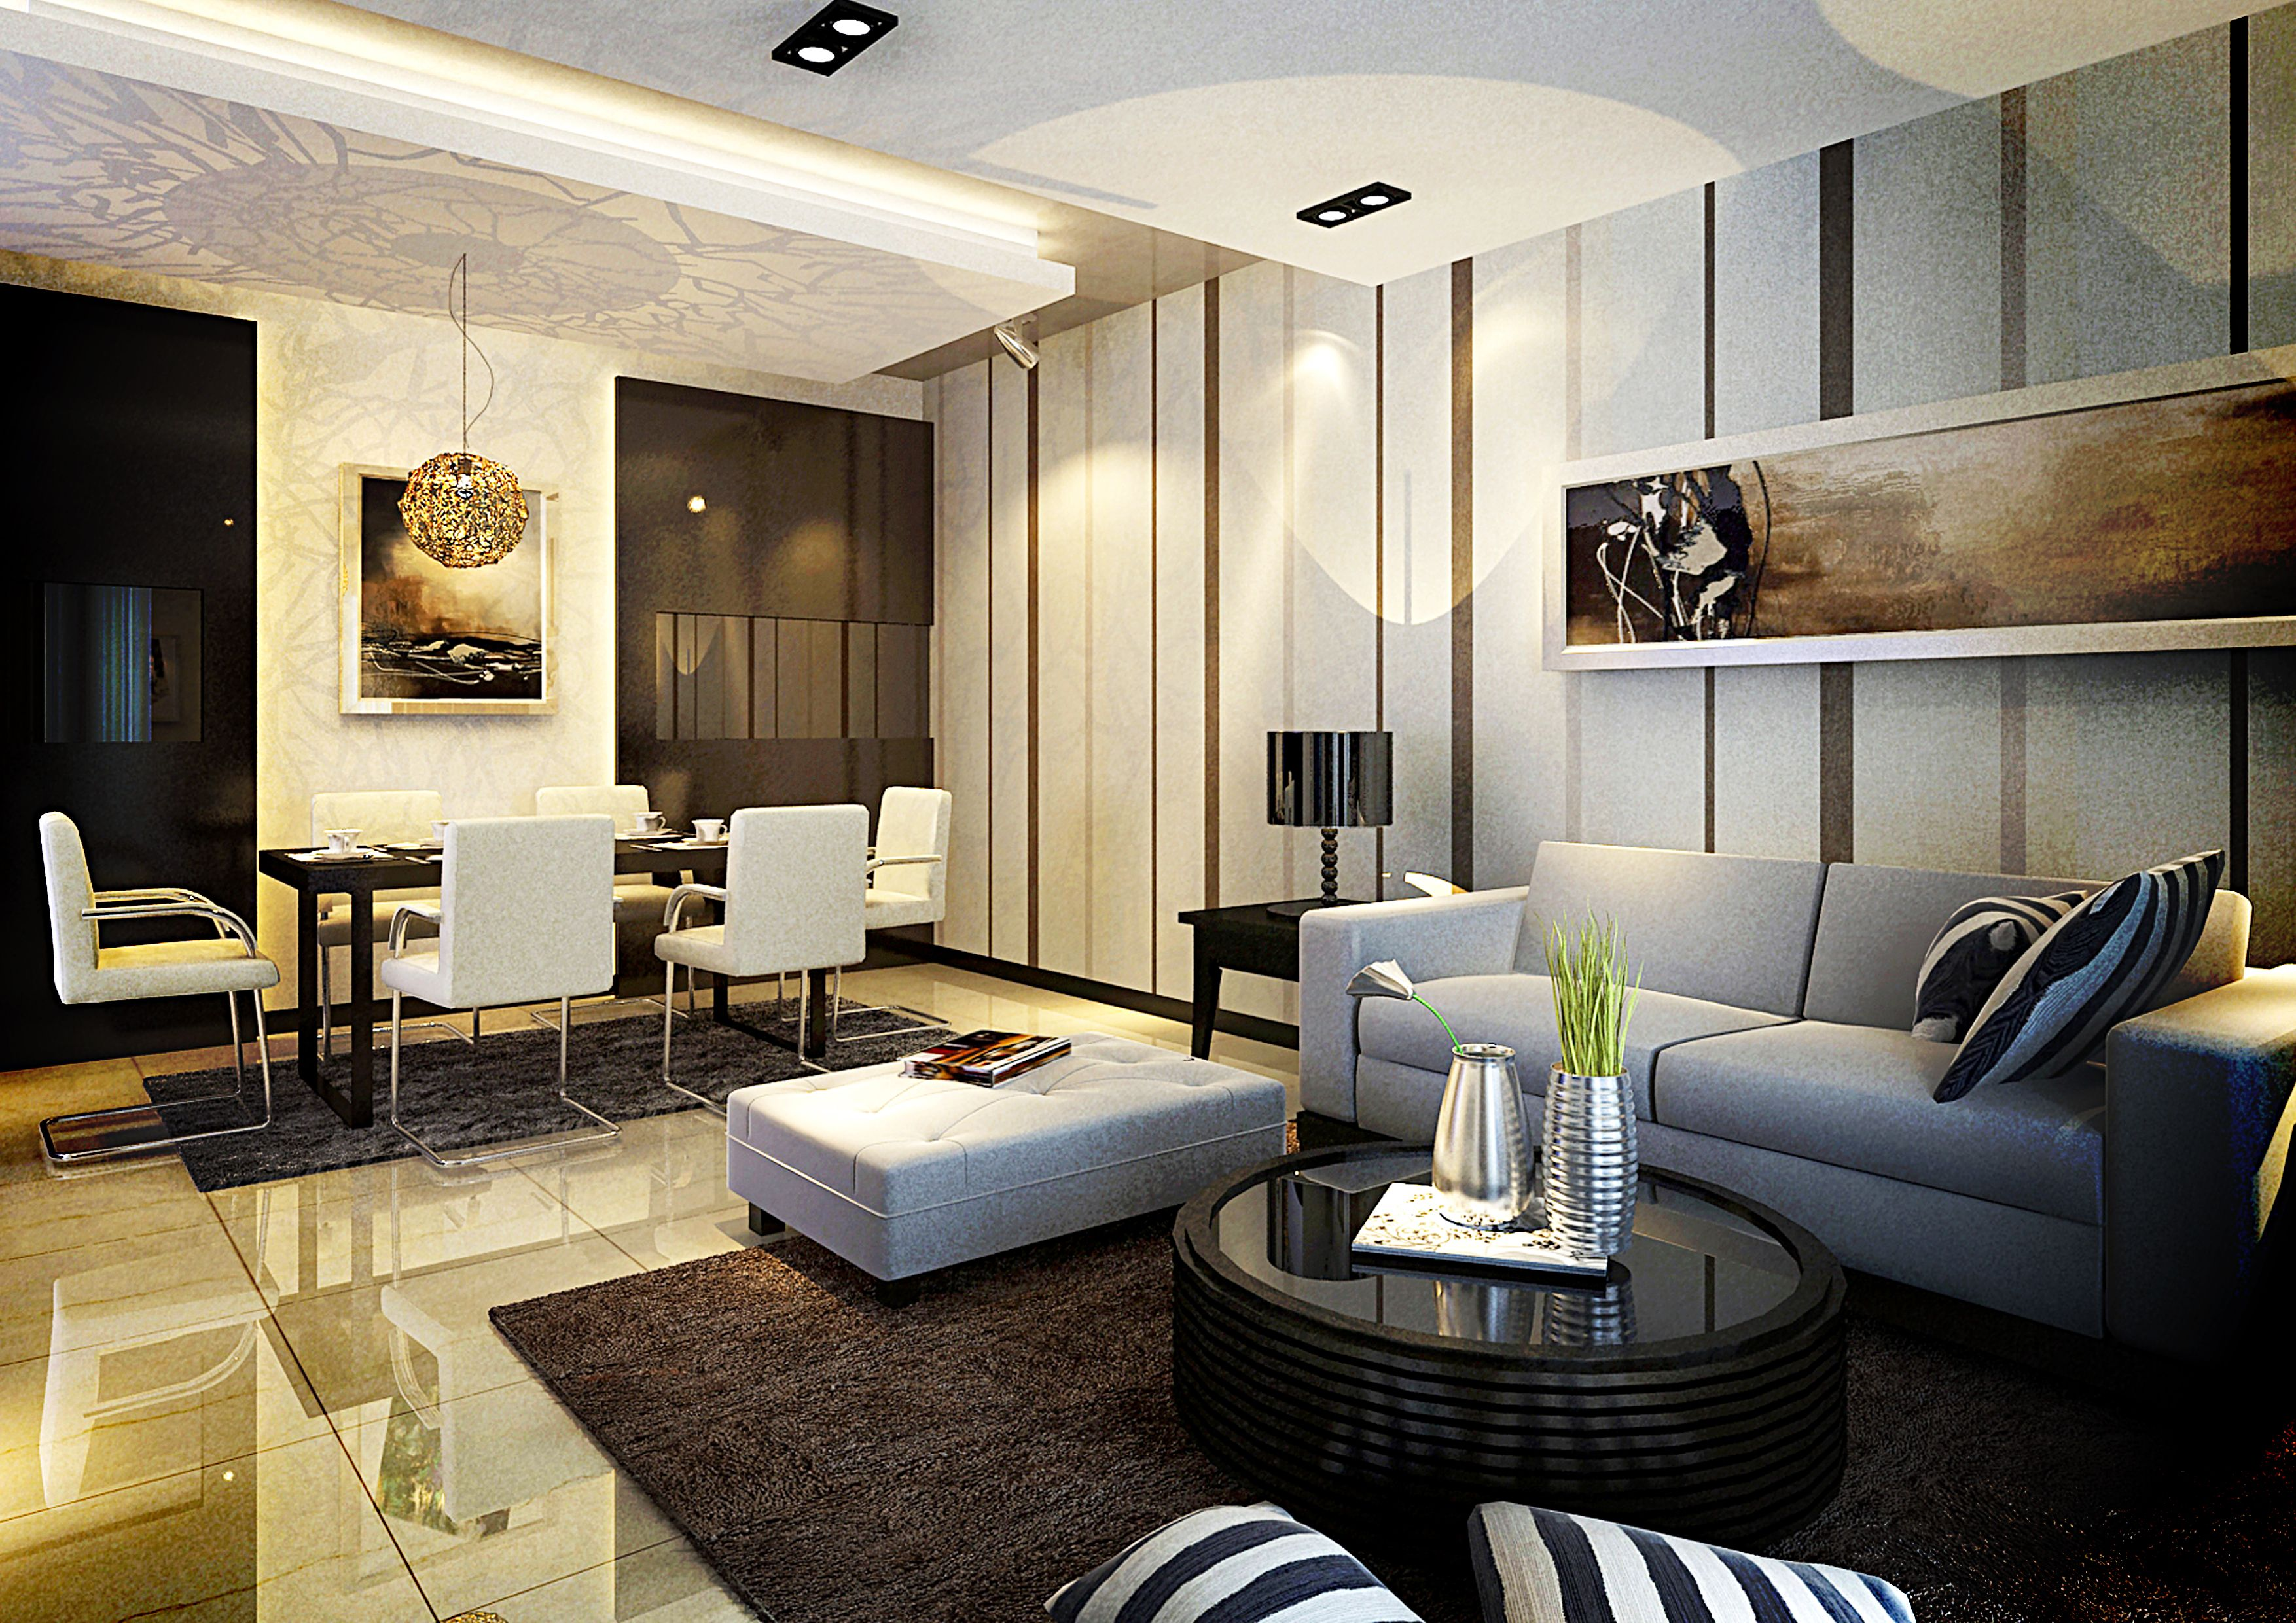 Elegant interior design in singapore interior design for Room decor ideas singapore